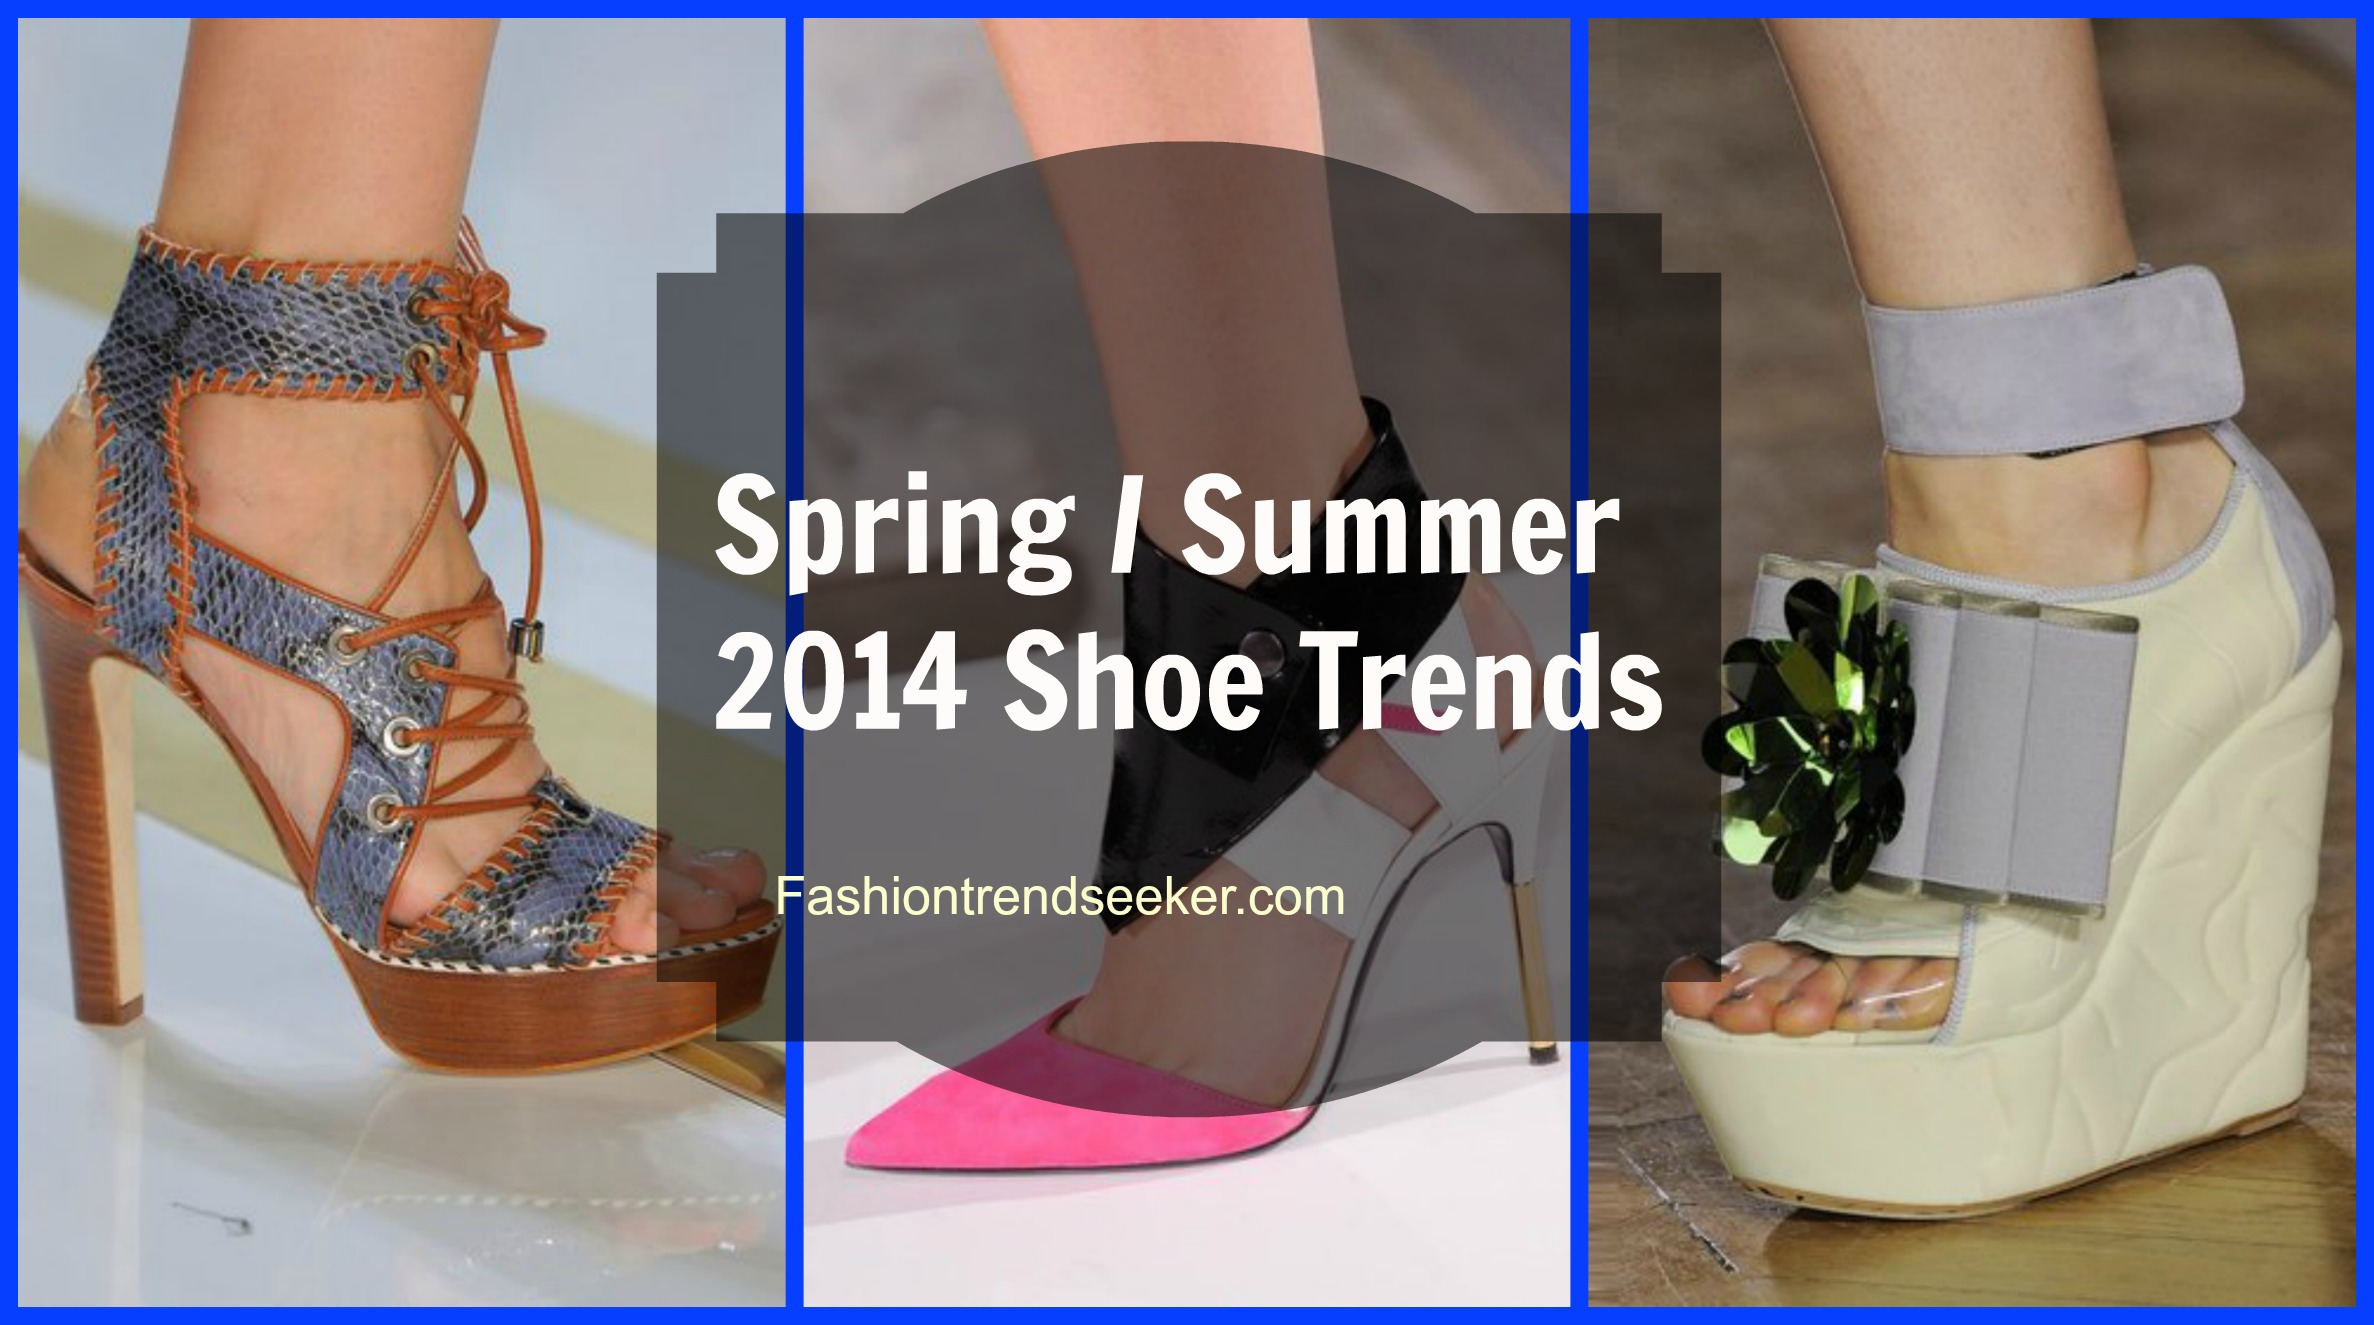 To acquire Trend spring flat platform shoes picture trends